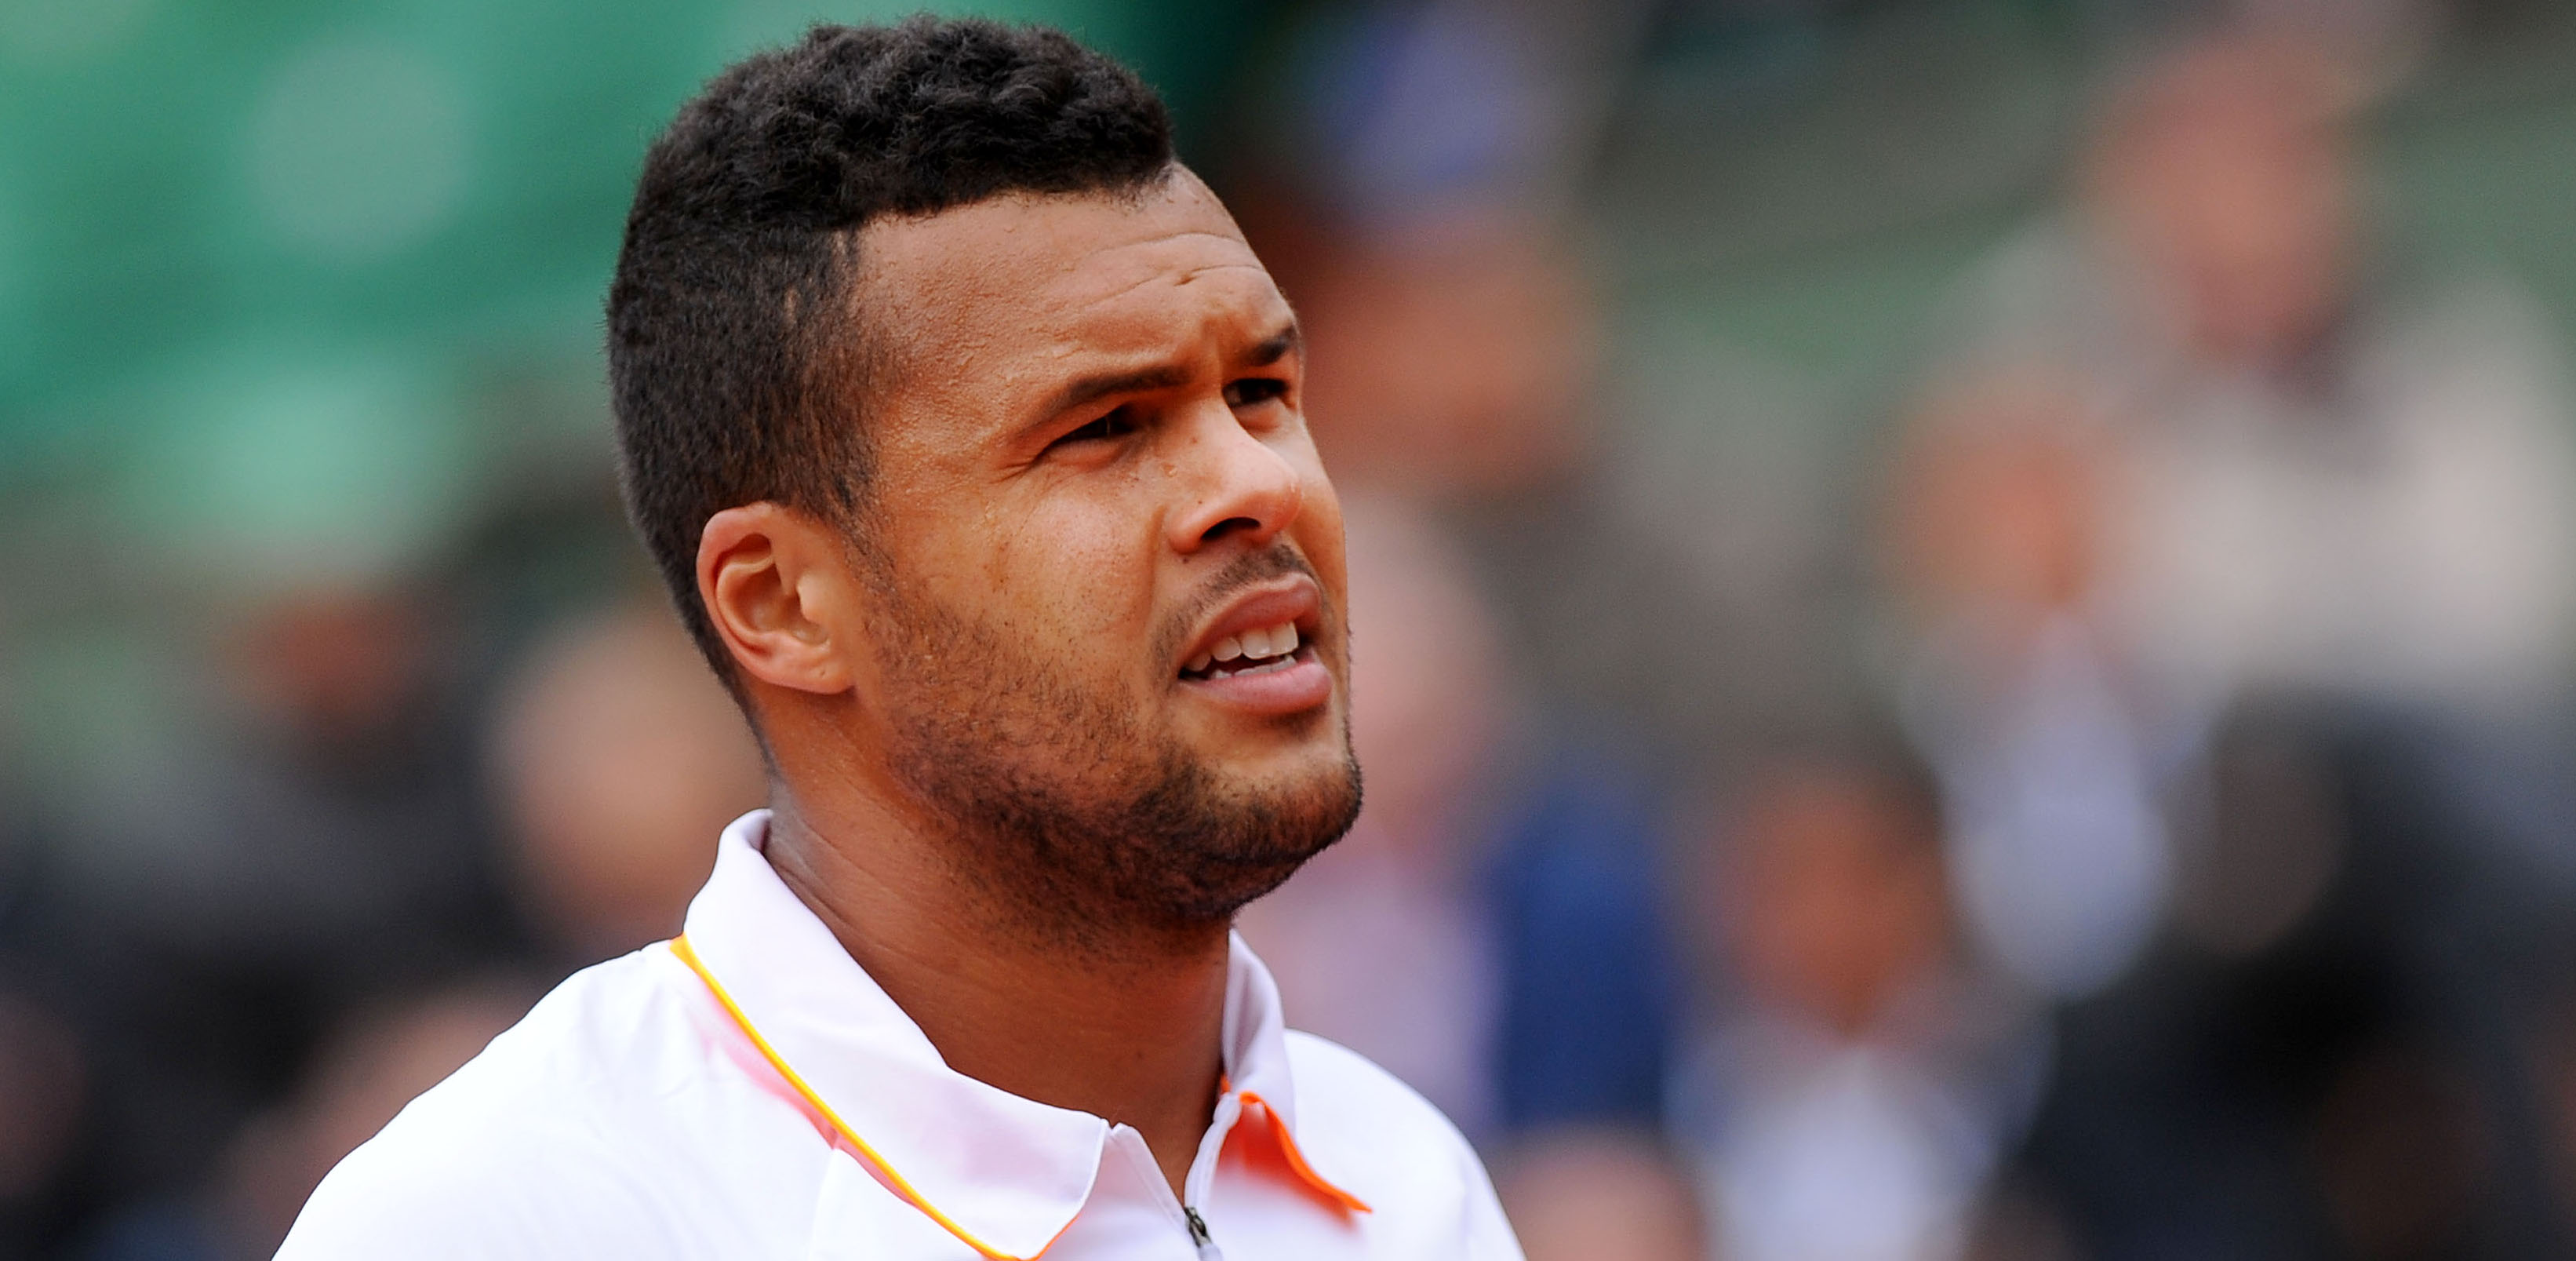 TENNIS : Roland Garros 2014 - Internationaux de France - 28/05/2014